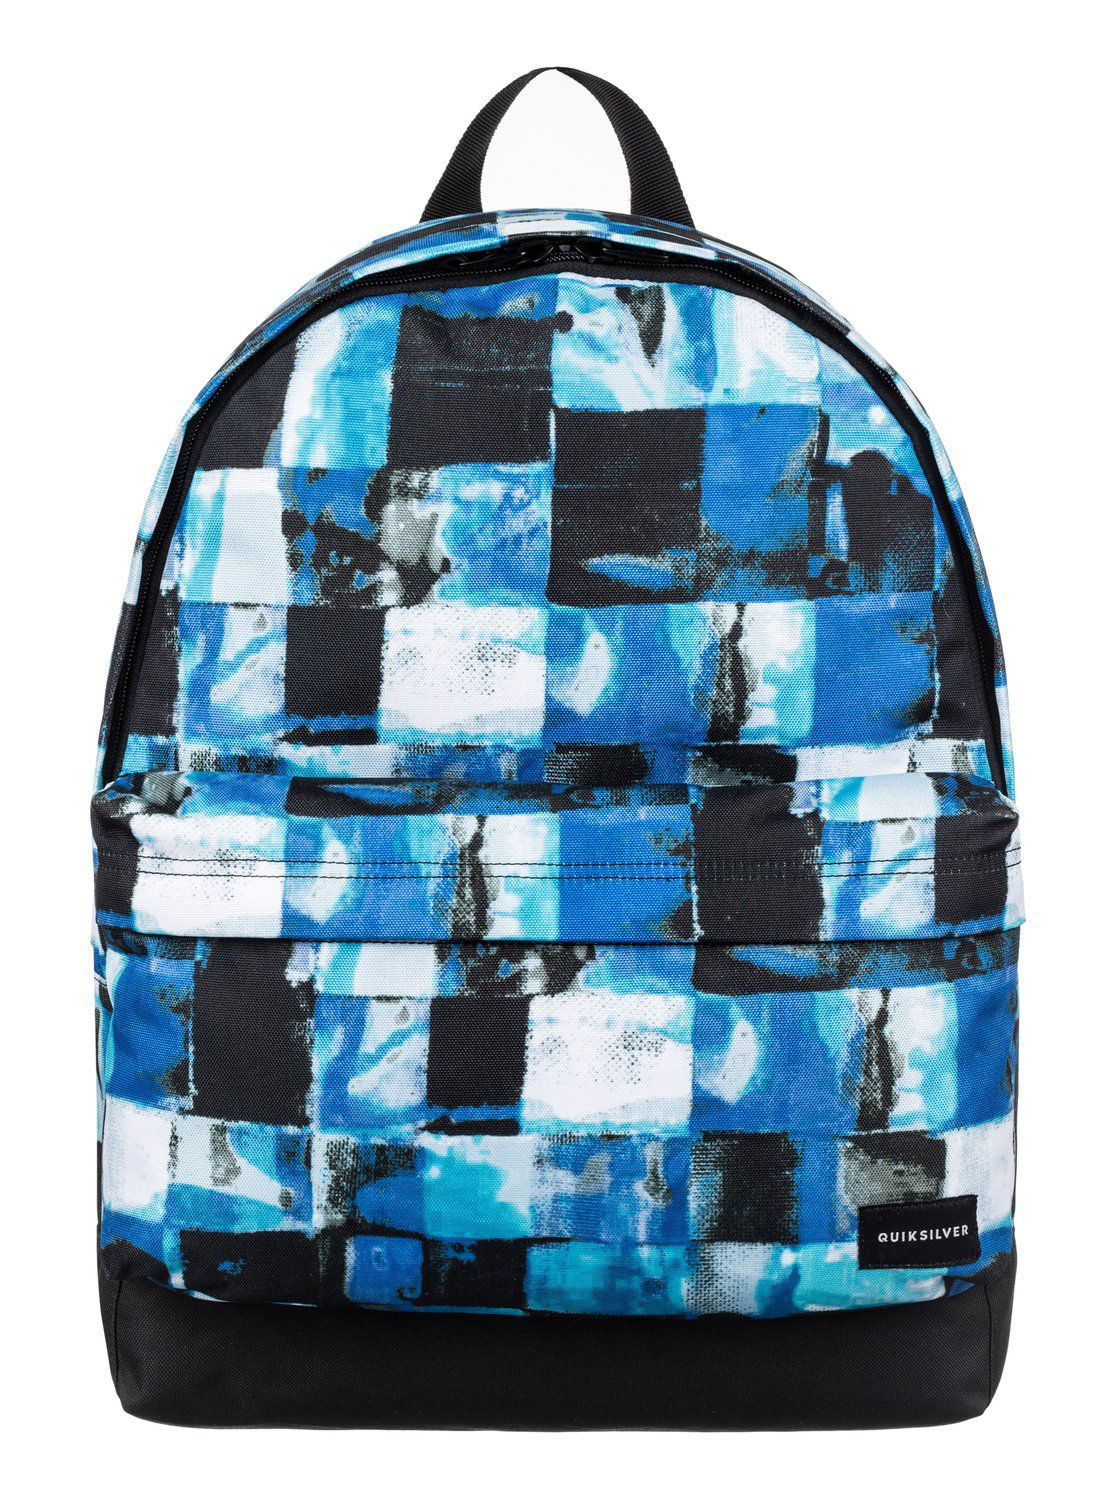 Quiksilver Quiksilver Everyday Poster 25L Backpack, Multi-Coloured